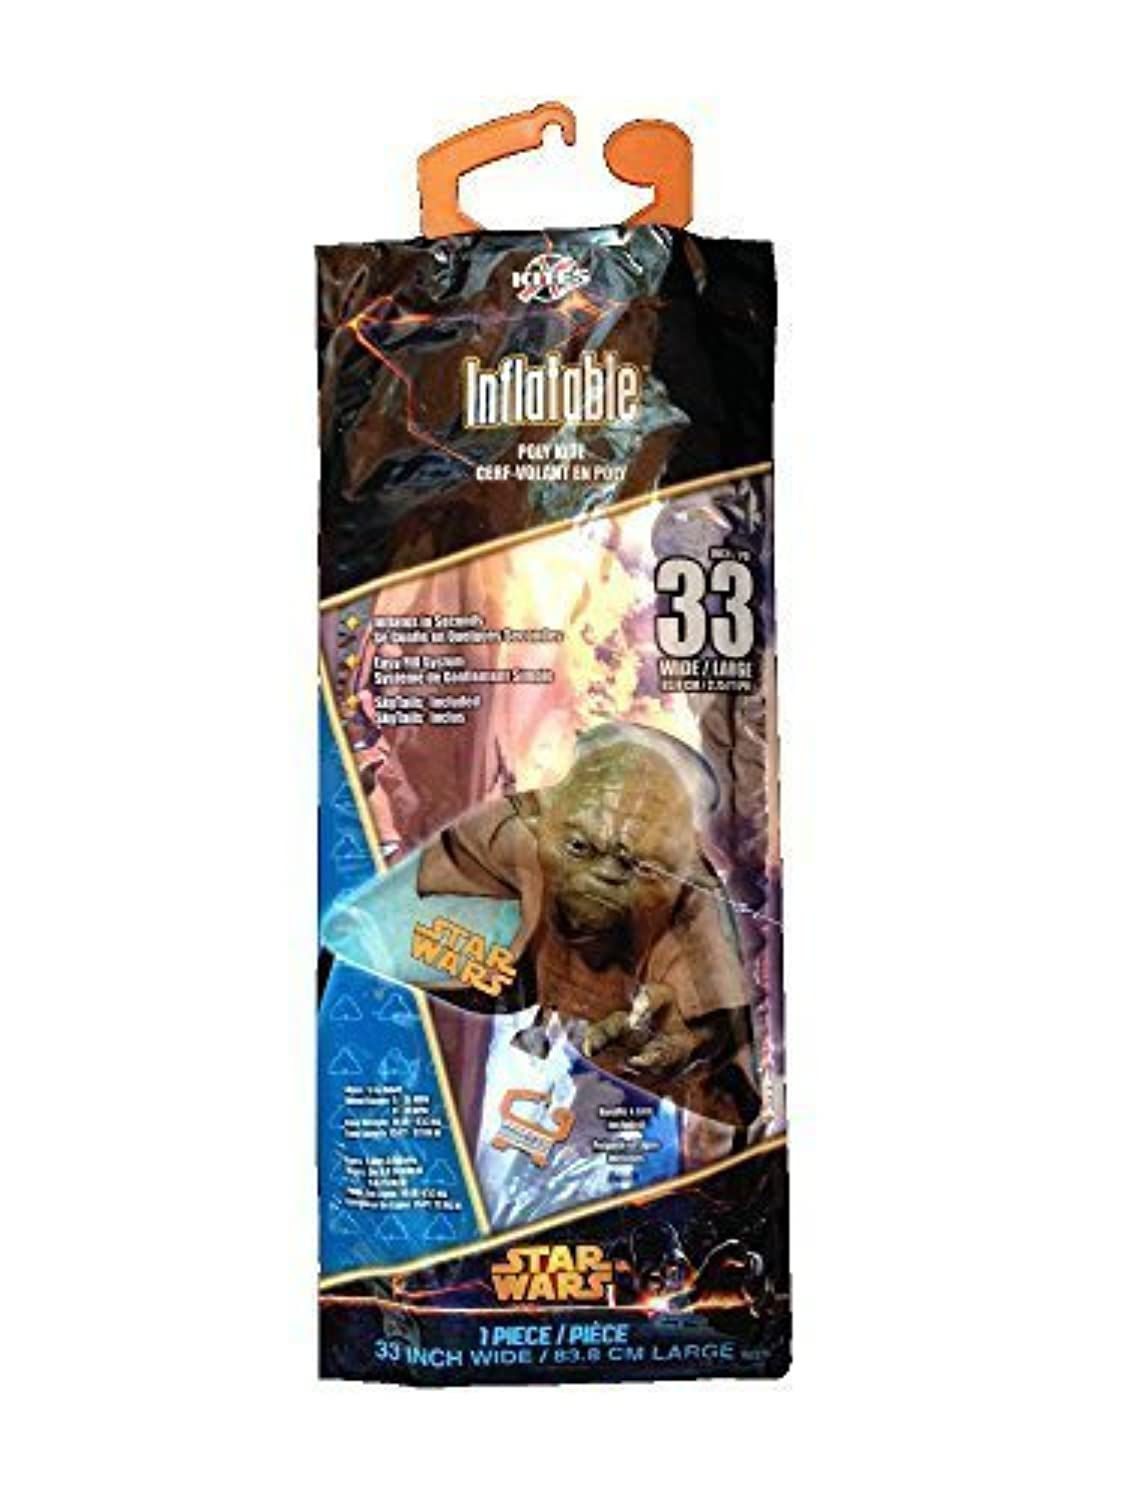 Star Wars Yoda Inflatable 33-inch wide Poly Kite SkyTails [並行輸入品]